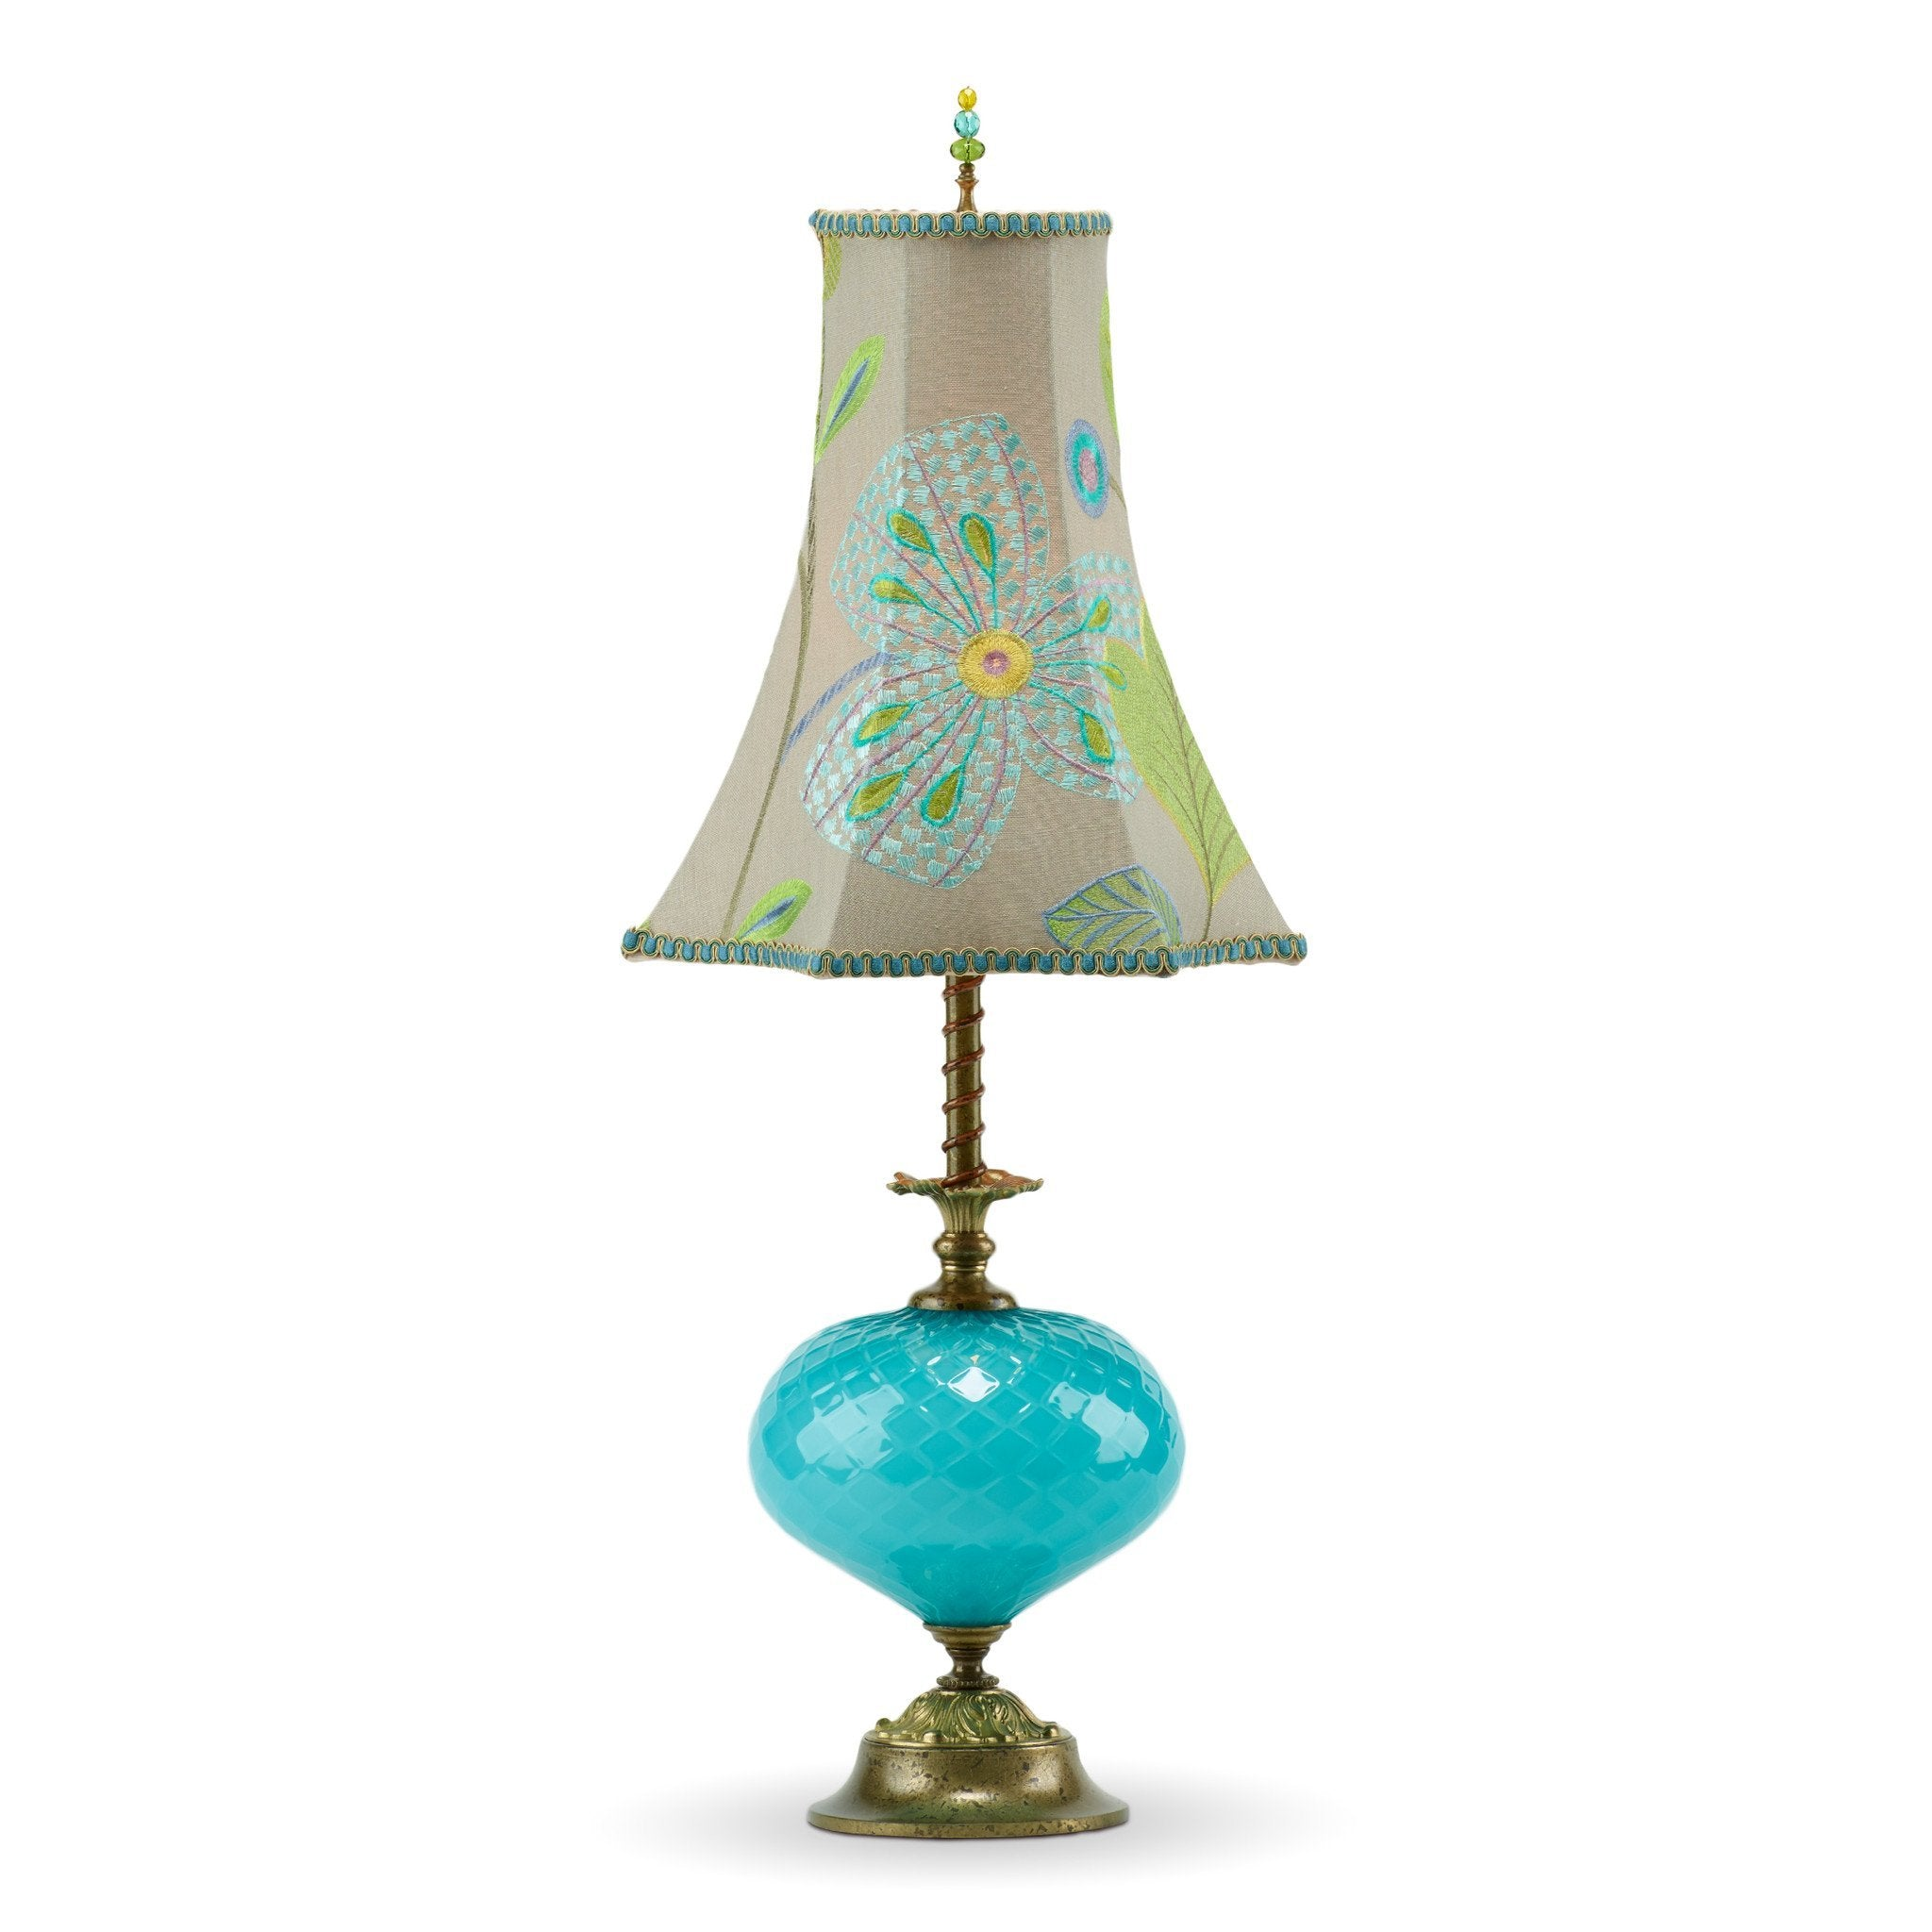 Chelsea Table Lamp Kinzig Design Turquoise Blue Lime Blown Glass Silk Shade Sweetheart Gallery Contemporary Craft Gallery Fine American Craft Art Design Handmade Home Personal Accessories